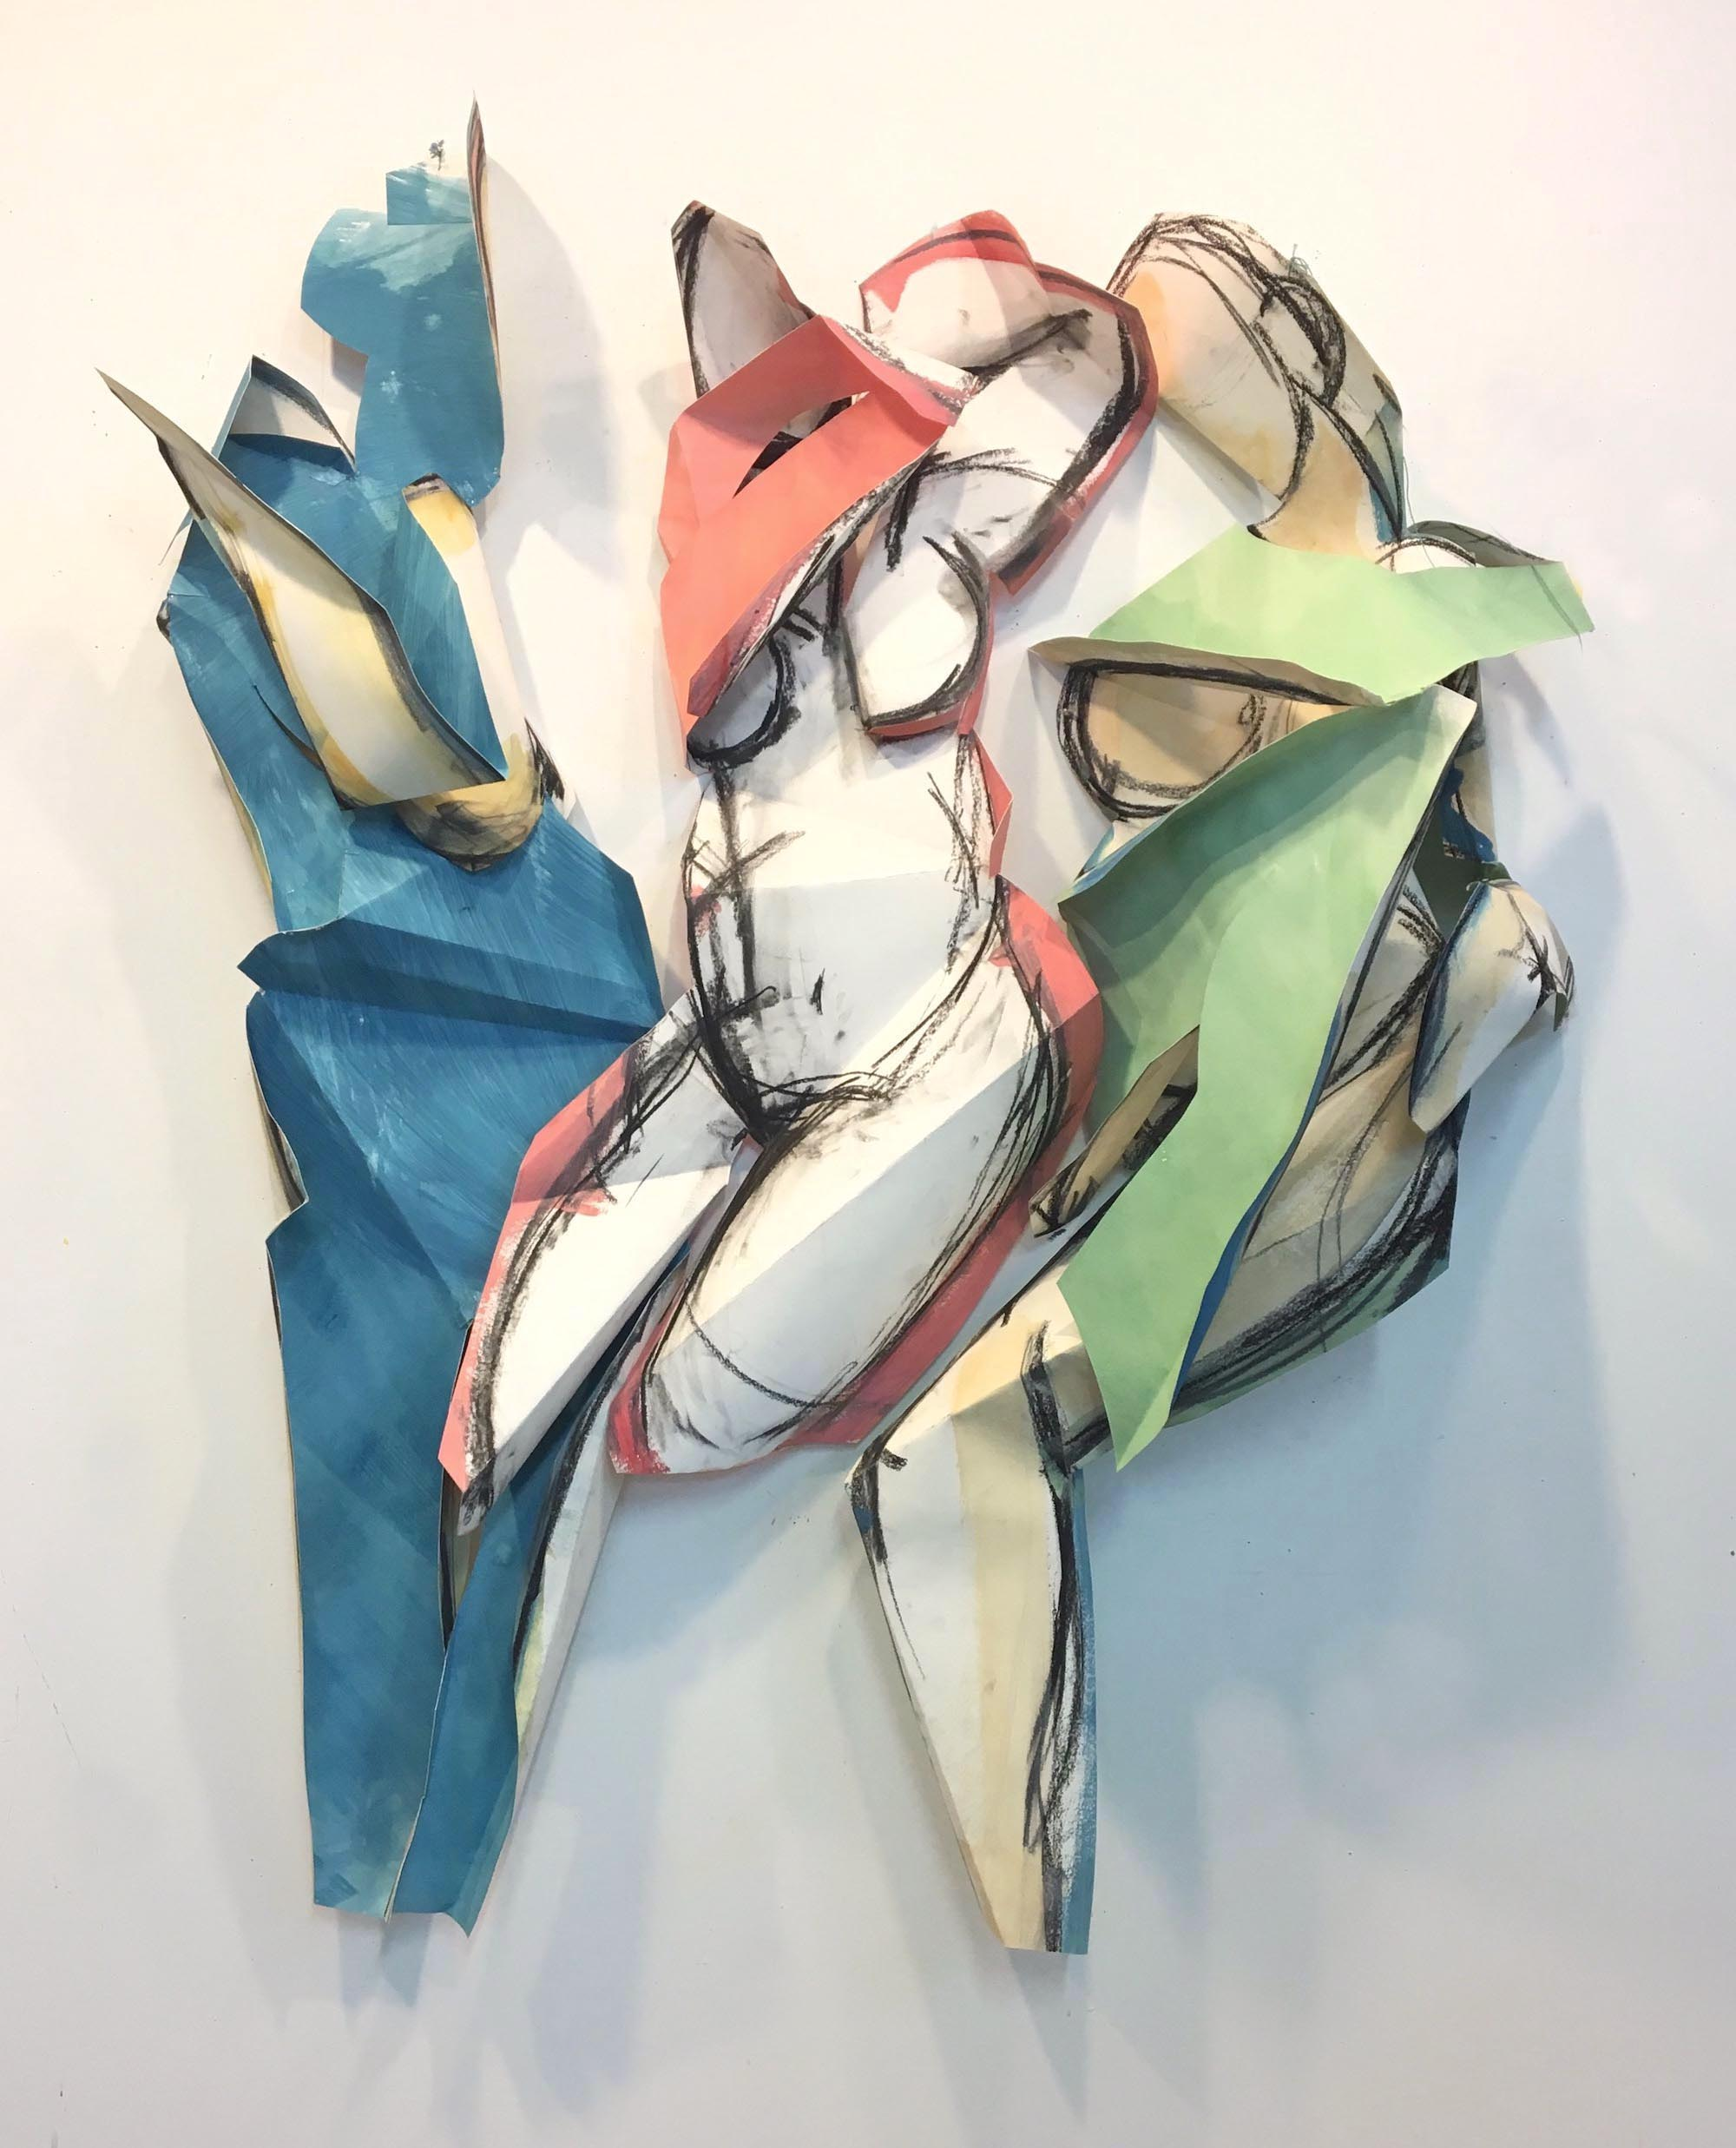 Exhibit: Figurative Landscape ~ paintings, drawings, sculptures by Heidi Lanino